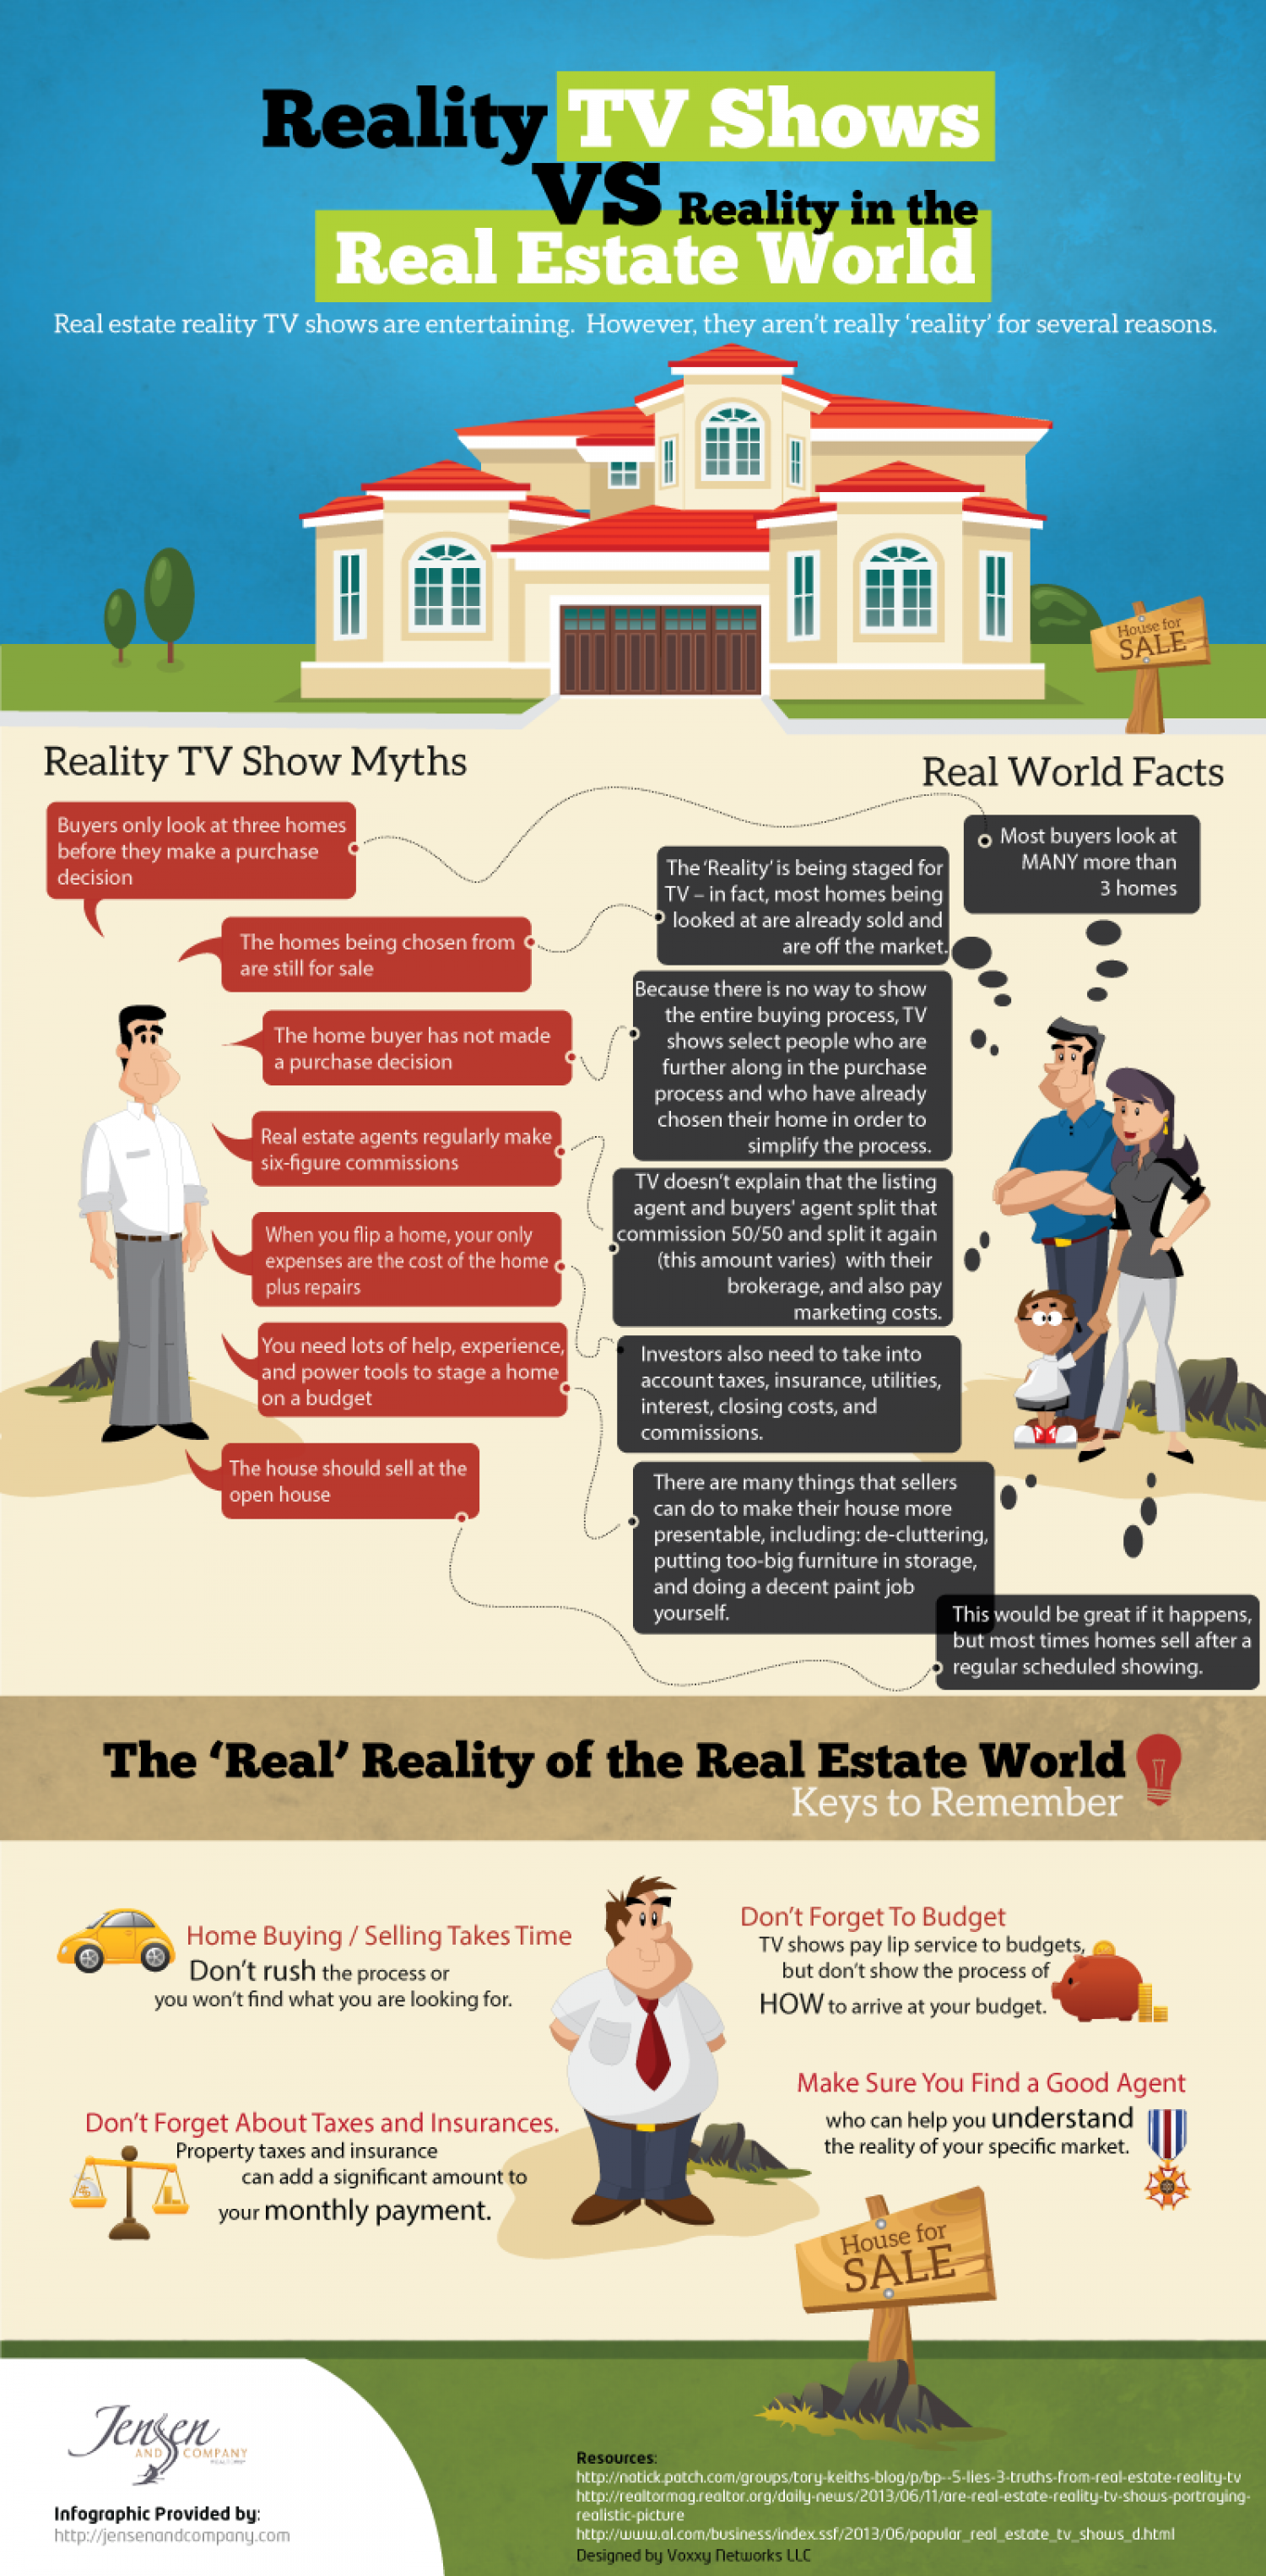 sports versus reality television Like many other things in our lives that are coming together, sports and reality tv are converging too like many other things in our lives that are coming together, sports and reality tv are converging too benchmark cheating the brands that were caught lying to your face.